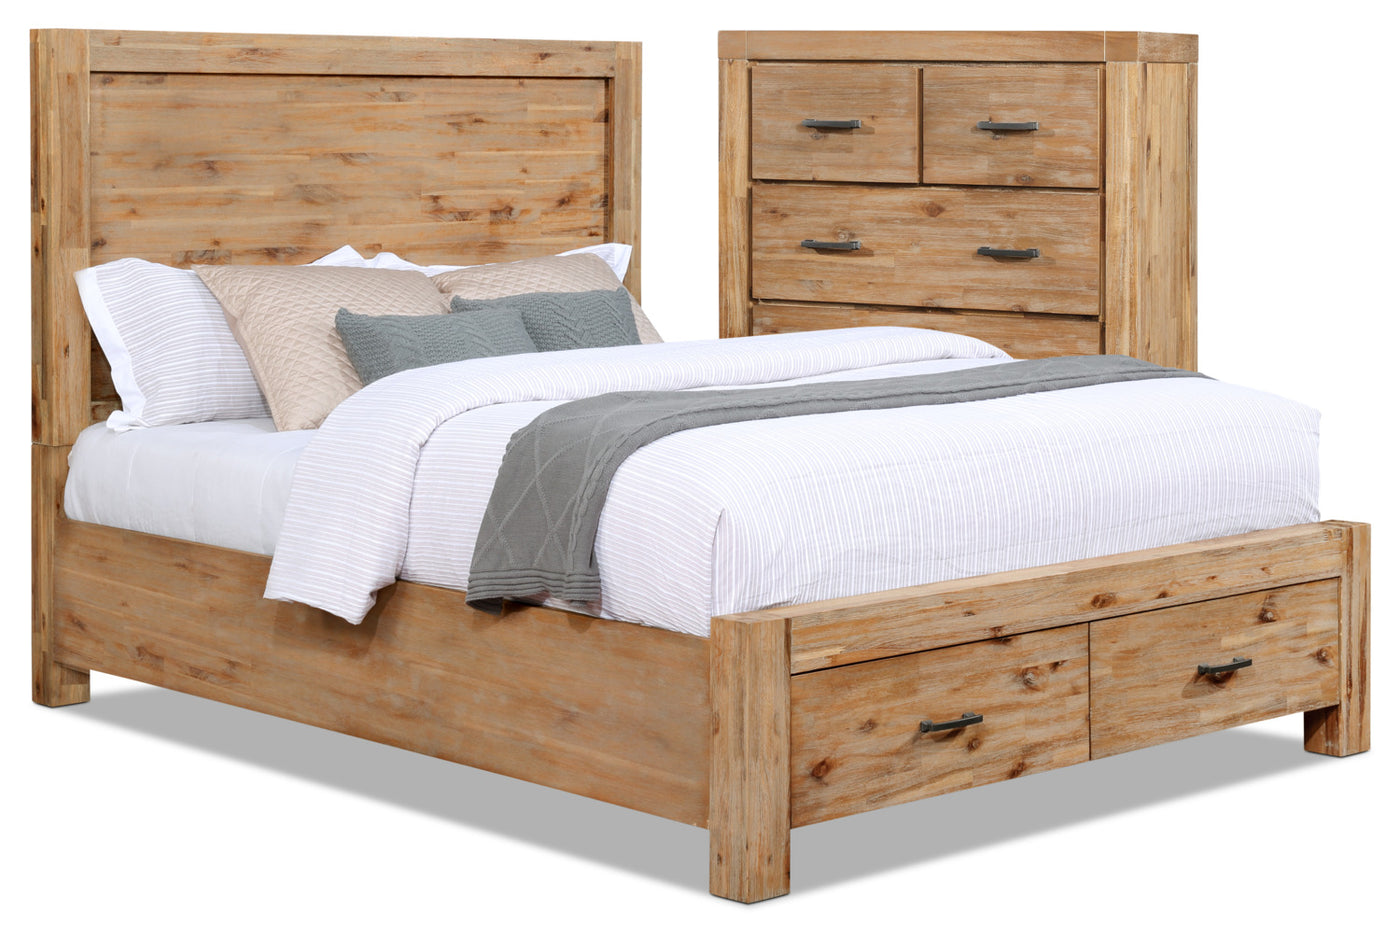 Acadia piece queen storage bed and chest package the brick